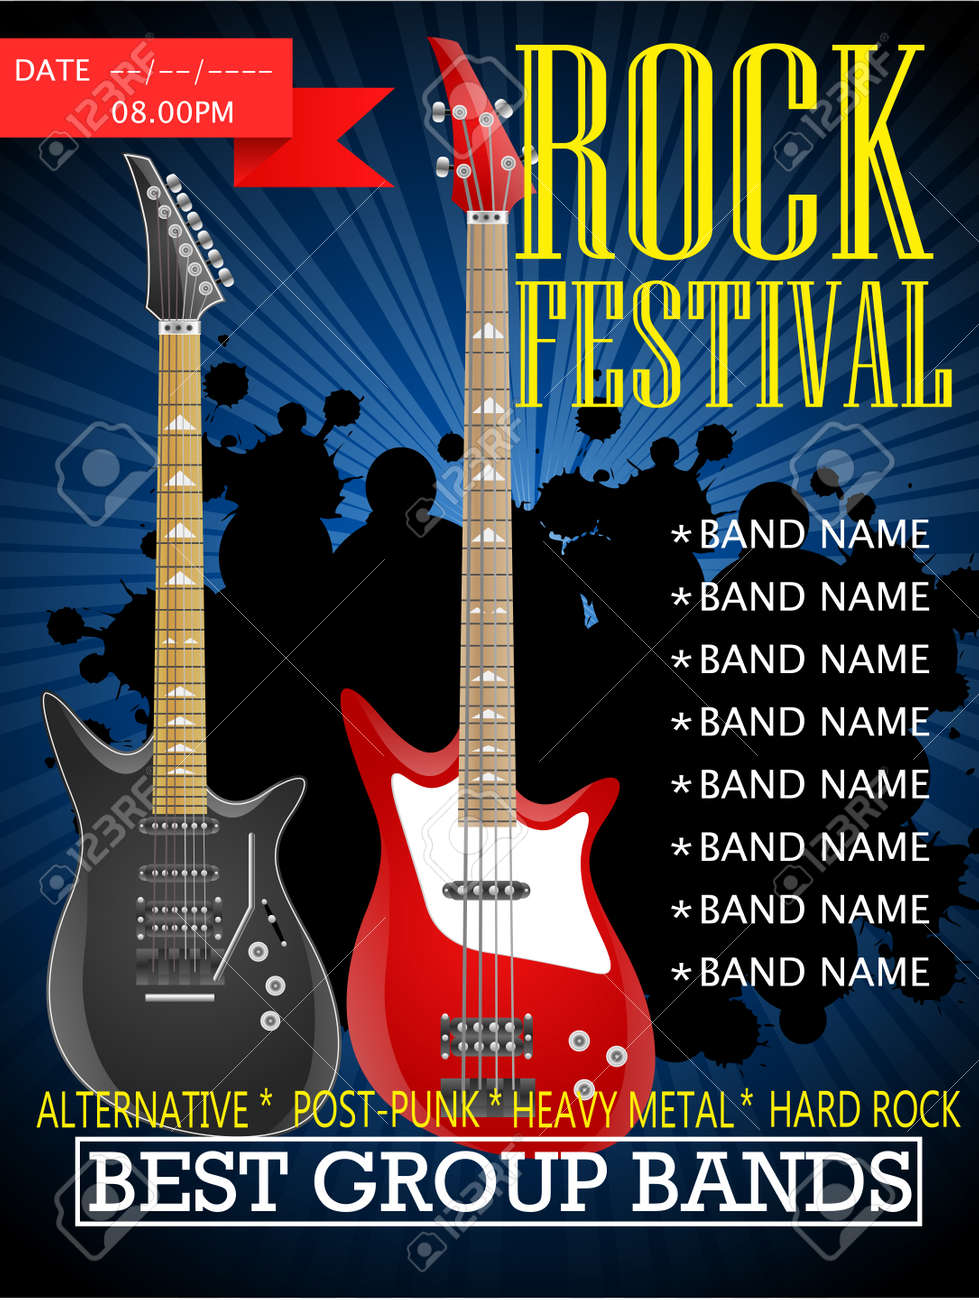 Rock Festival Banner Design Template With Guitar Vector Illustration Royalty Free Cliparts Vectors And Stock Illustration Image 92435997